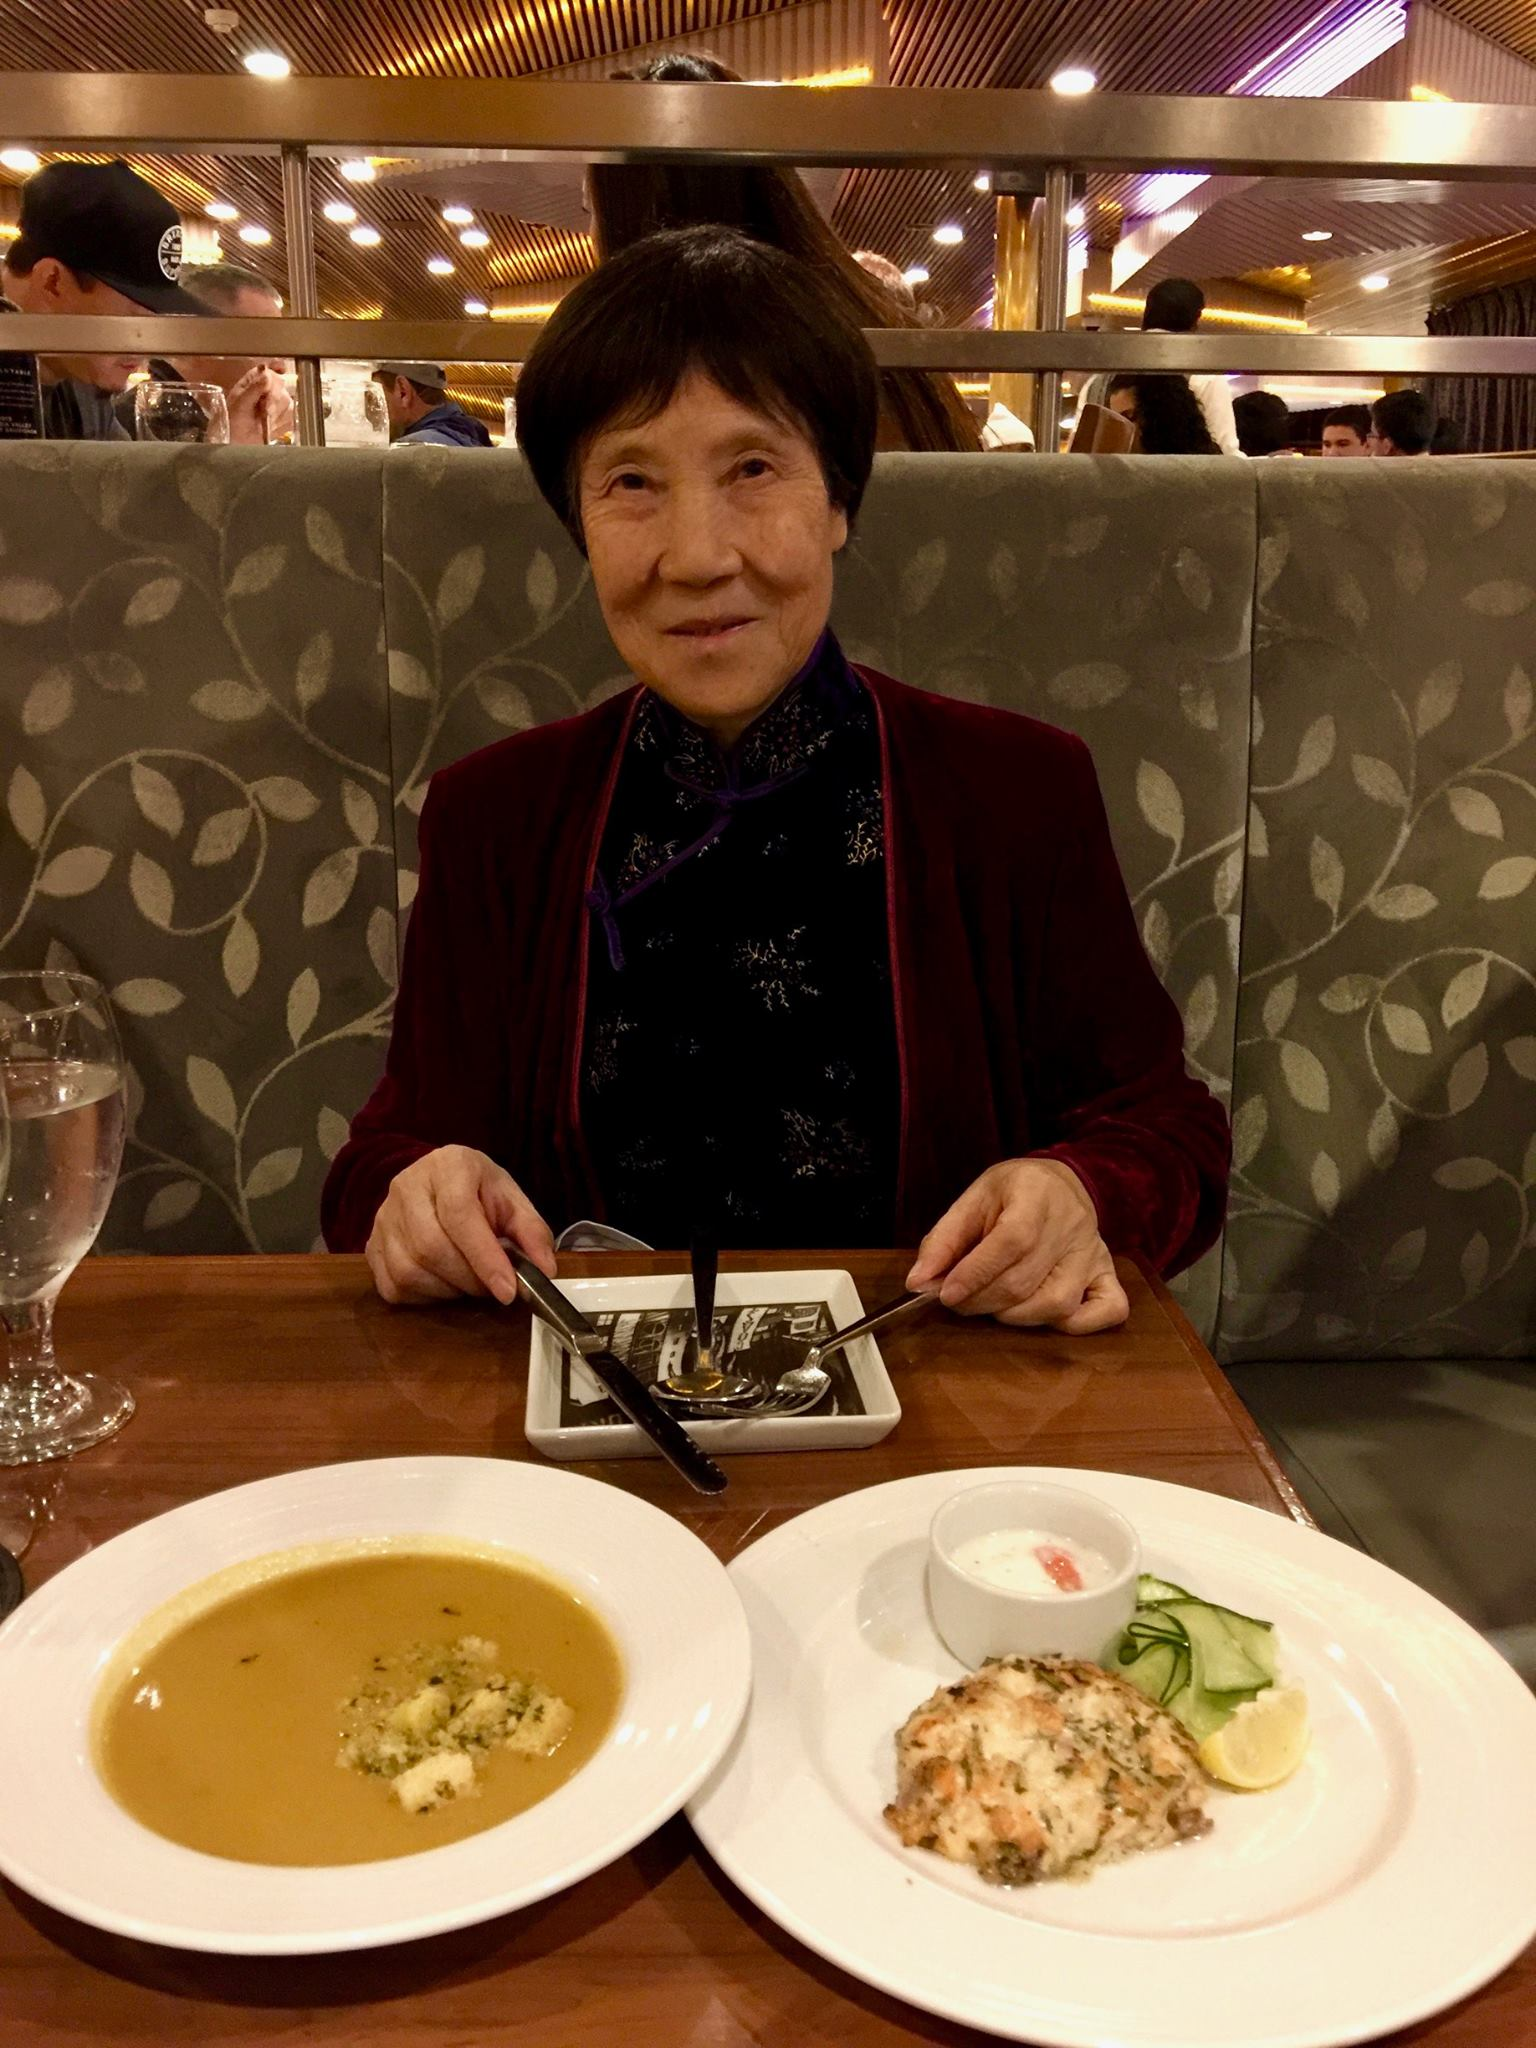 Jennifer's mother at dinner table on Carnival Imagination. 曾錚的母親在狂想號遊輪(Carnival Imagination)的餐桌旁。